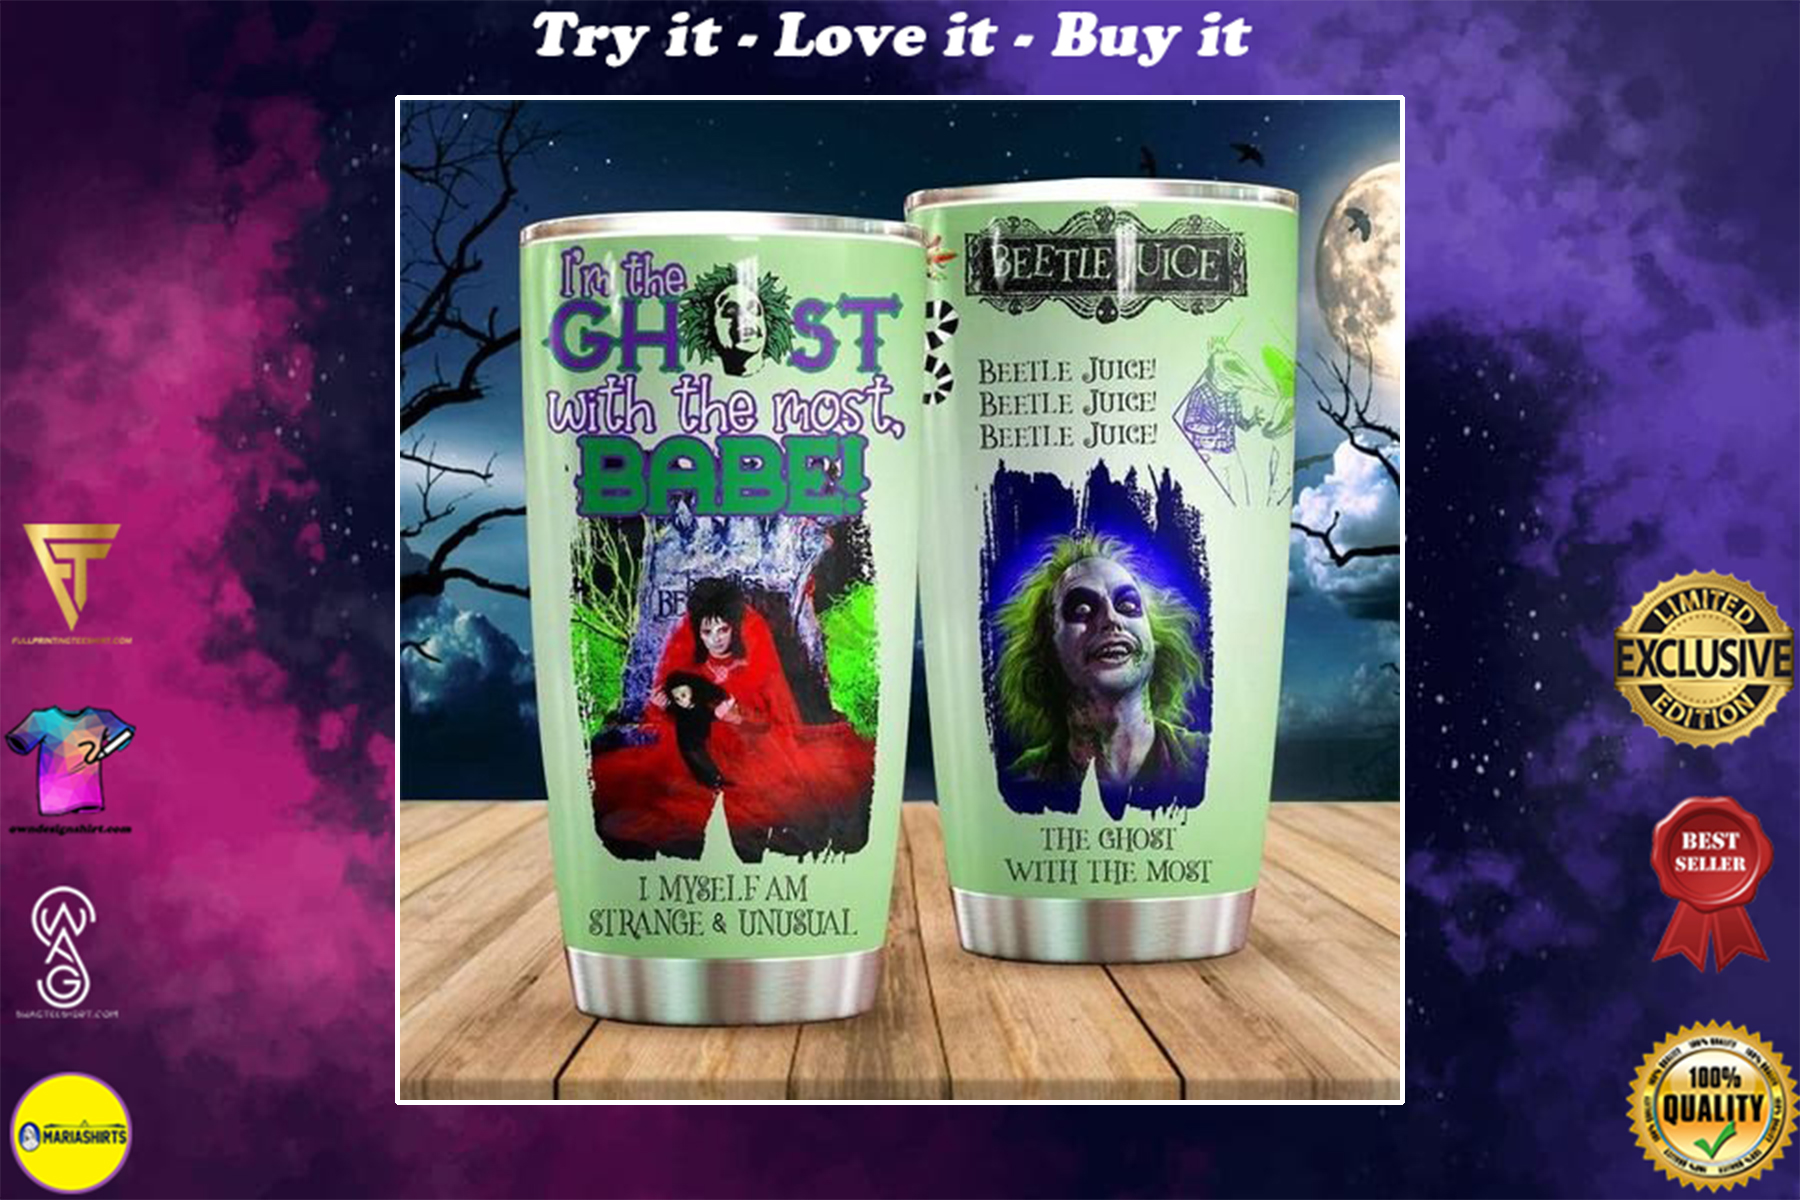 personalized name the ghost with the most beetlejuice tumbler